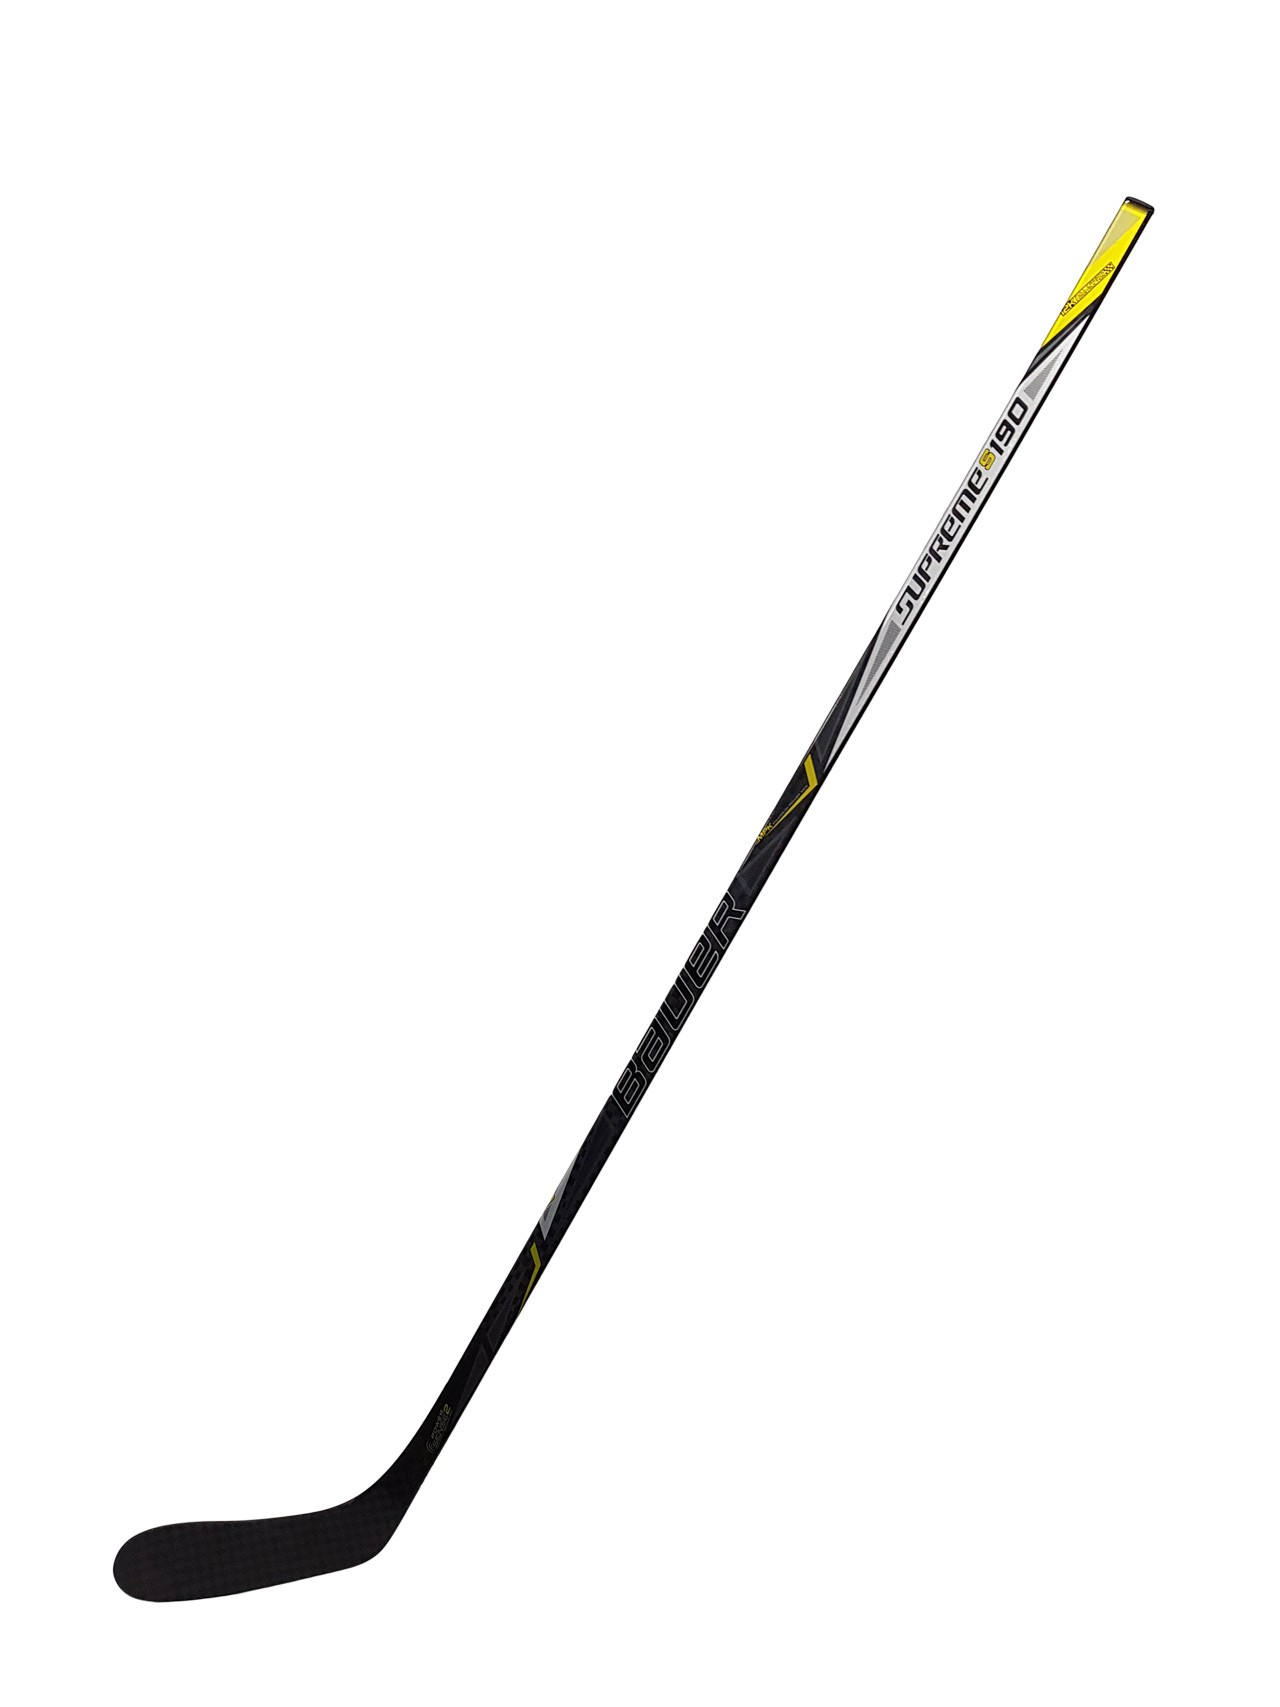 BAUER Supreme S190 S17 Senior Composite Hockey Stick